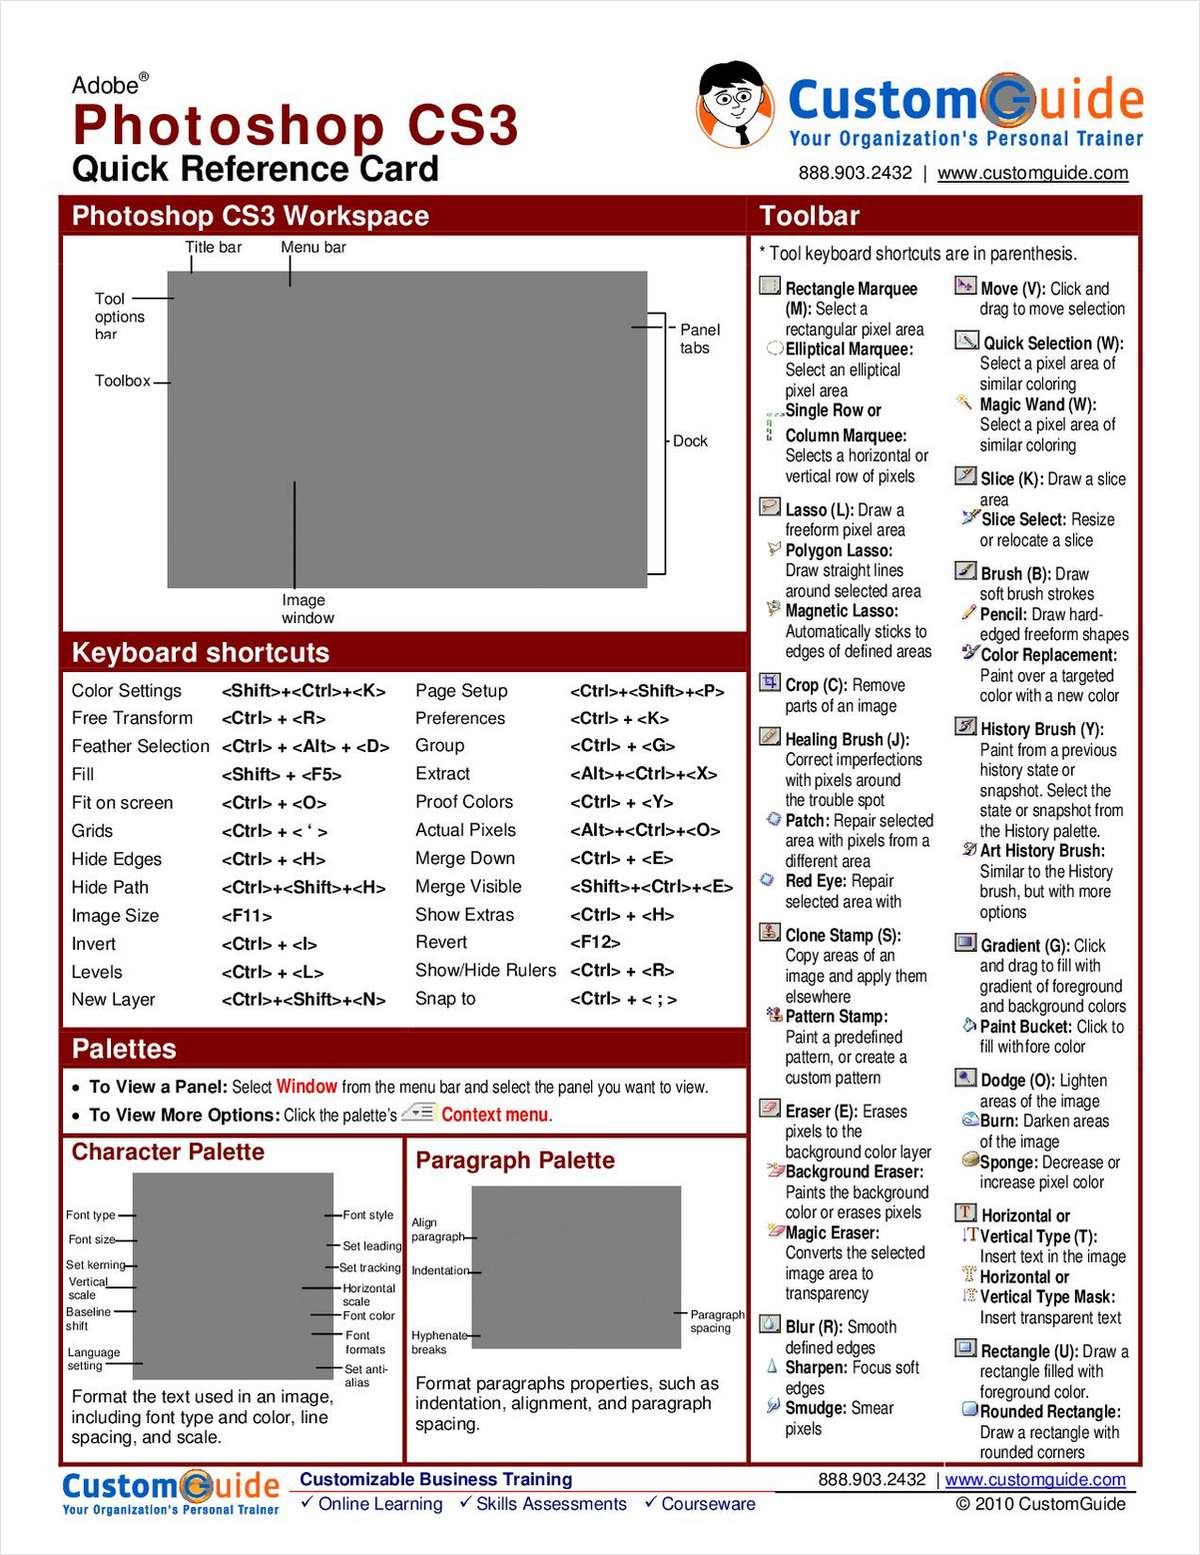 Adobe Photoshop CS3 - Free Quick Reference Card